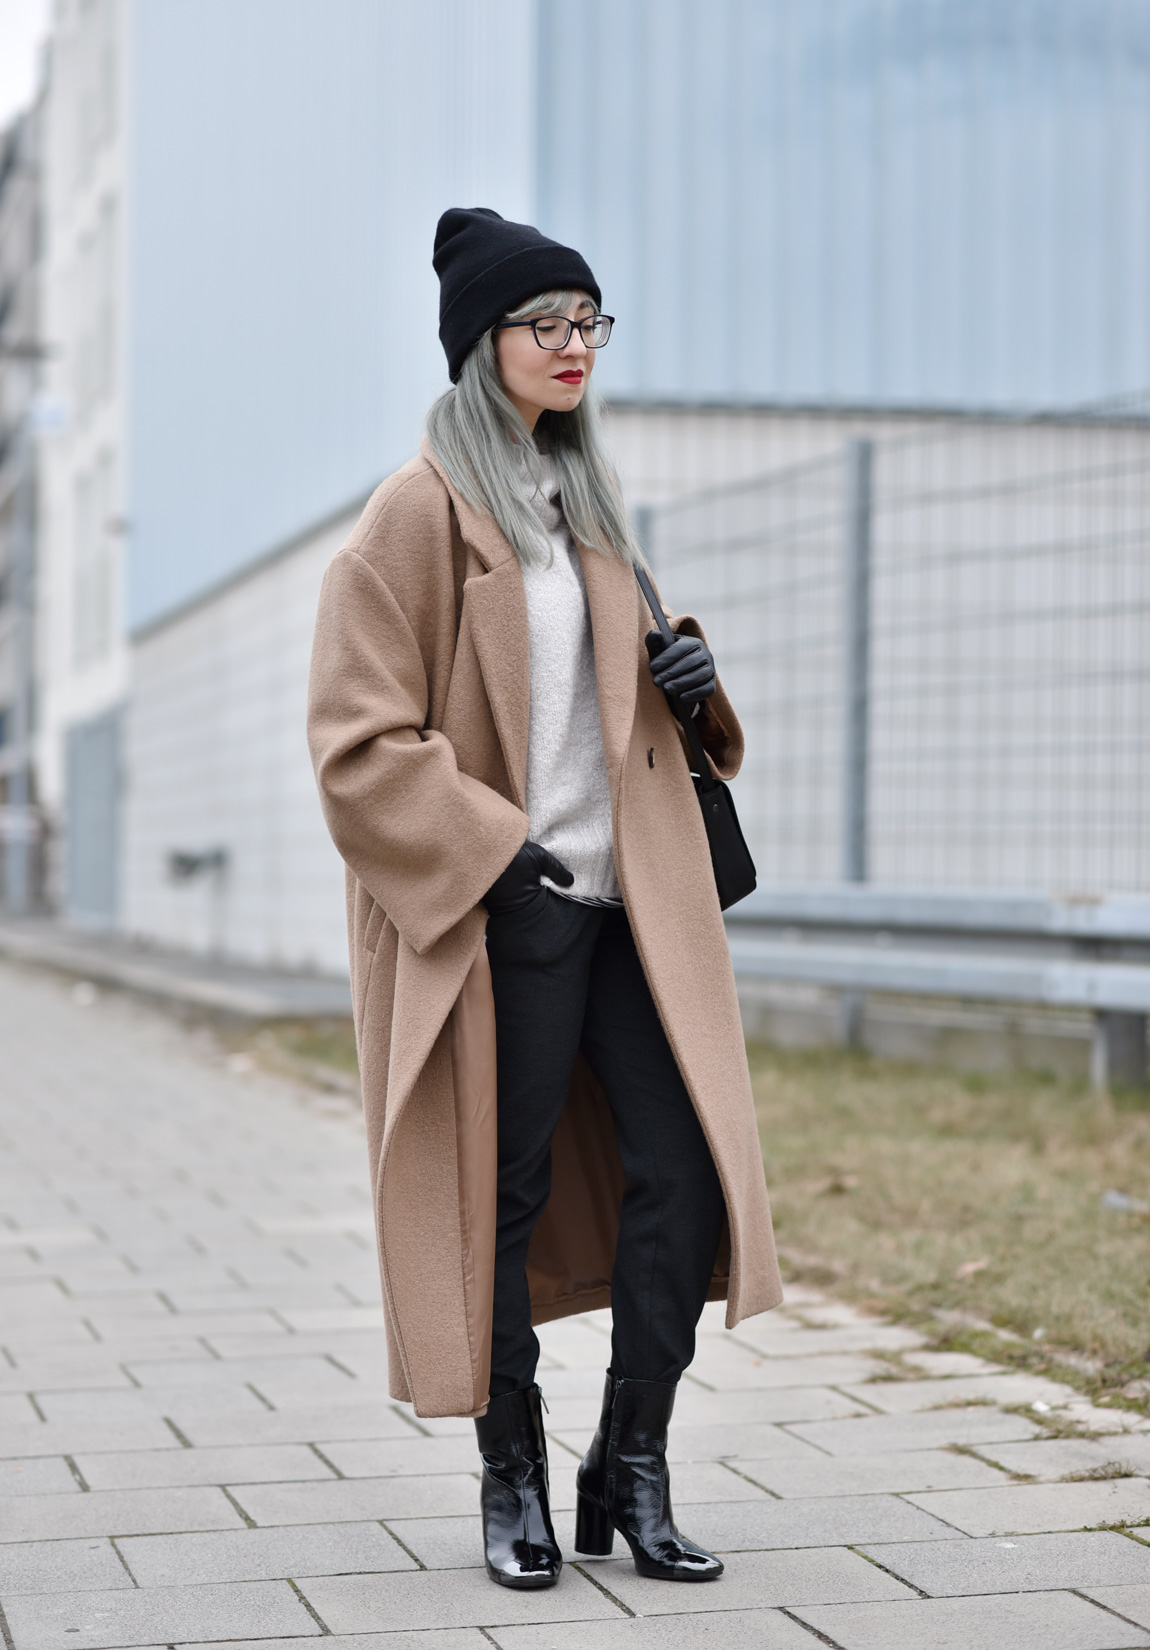 camel, mantel, fashionblogger, modeblogger, muenchen, outfit, winter, oversized, hm, coat, streetstyle, outfit